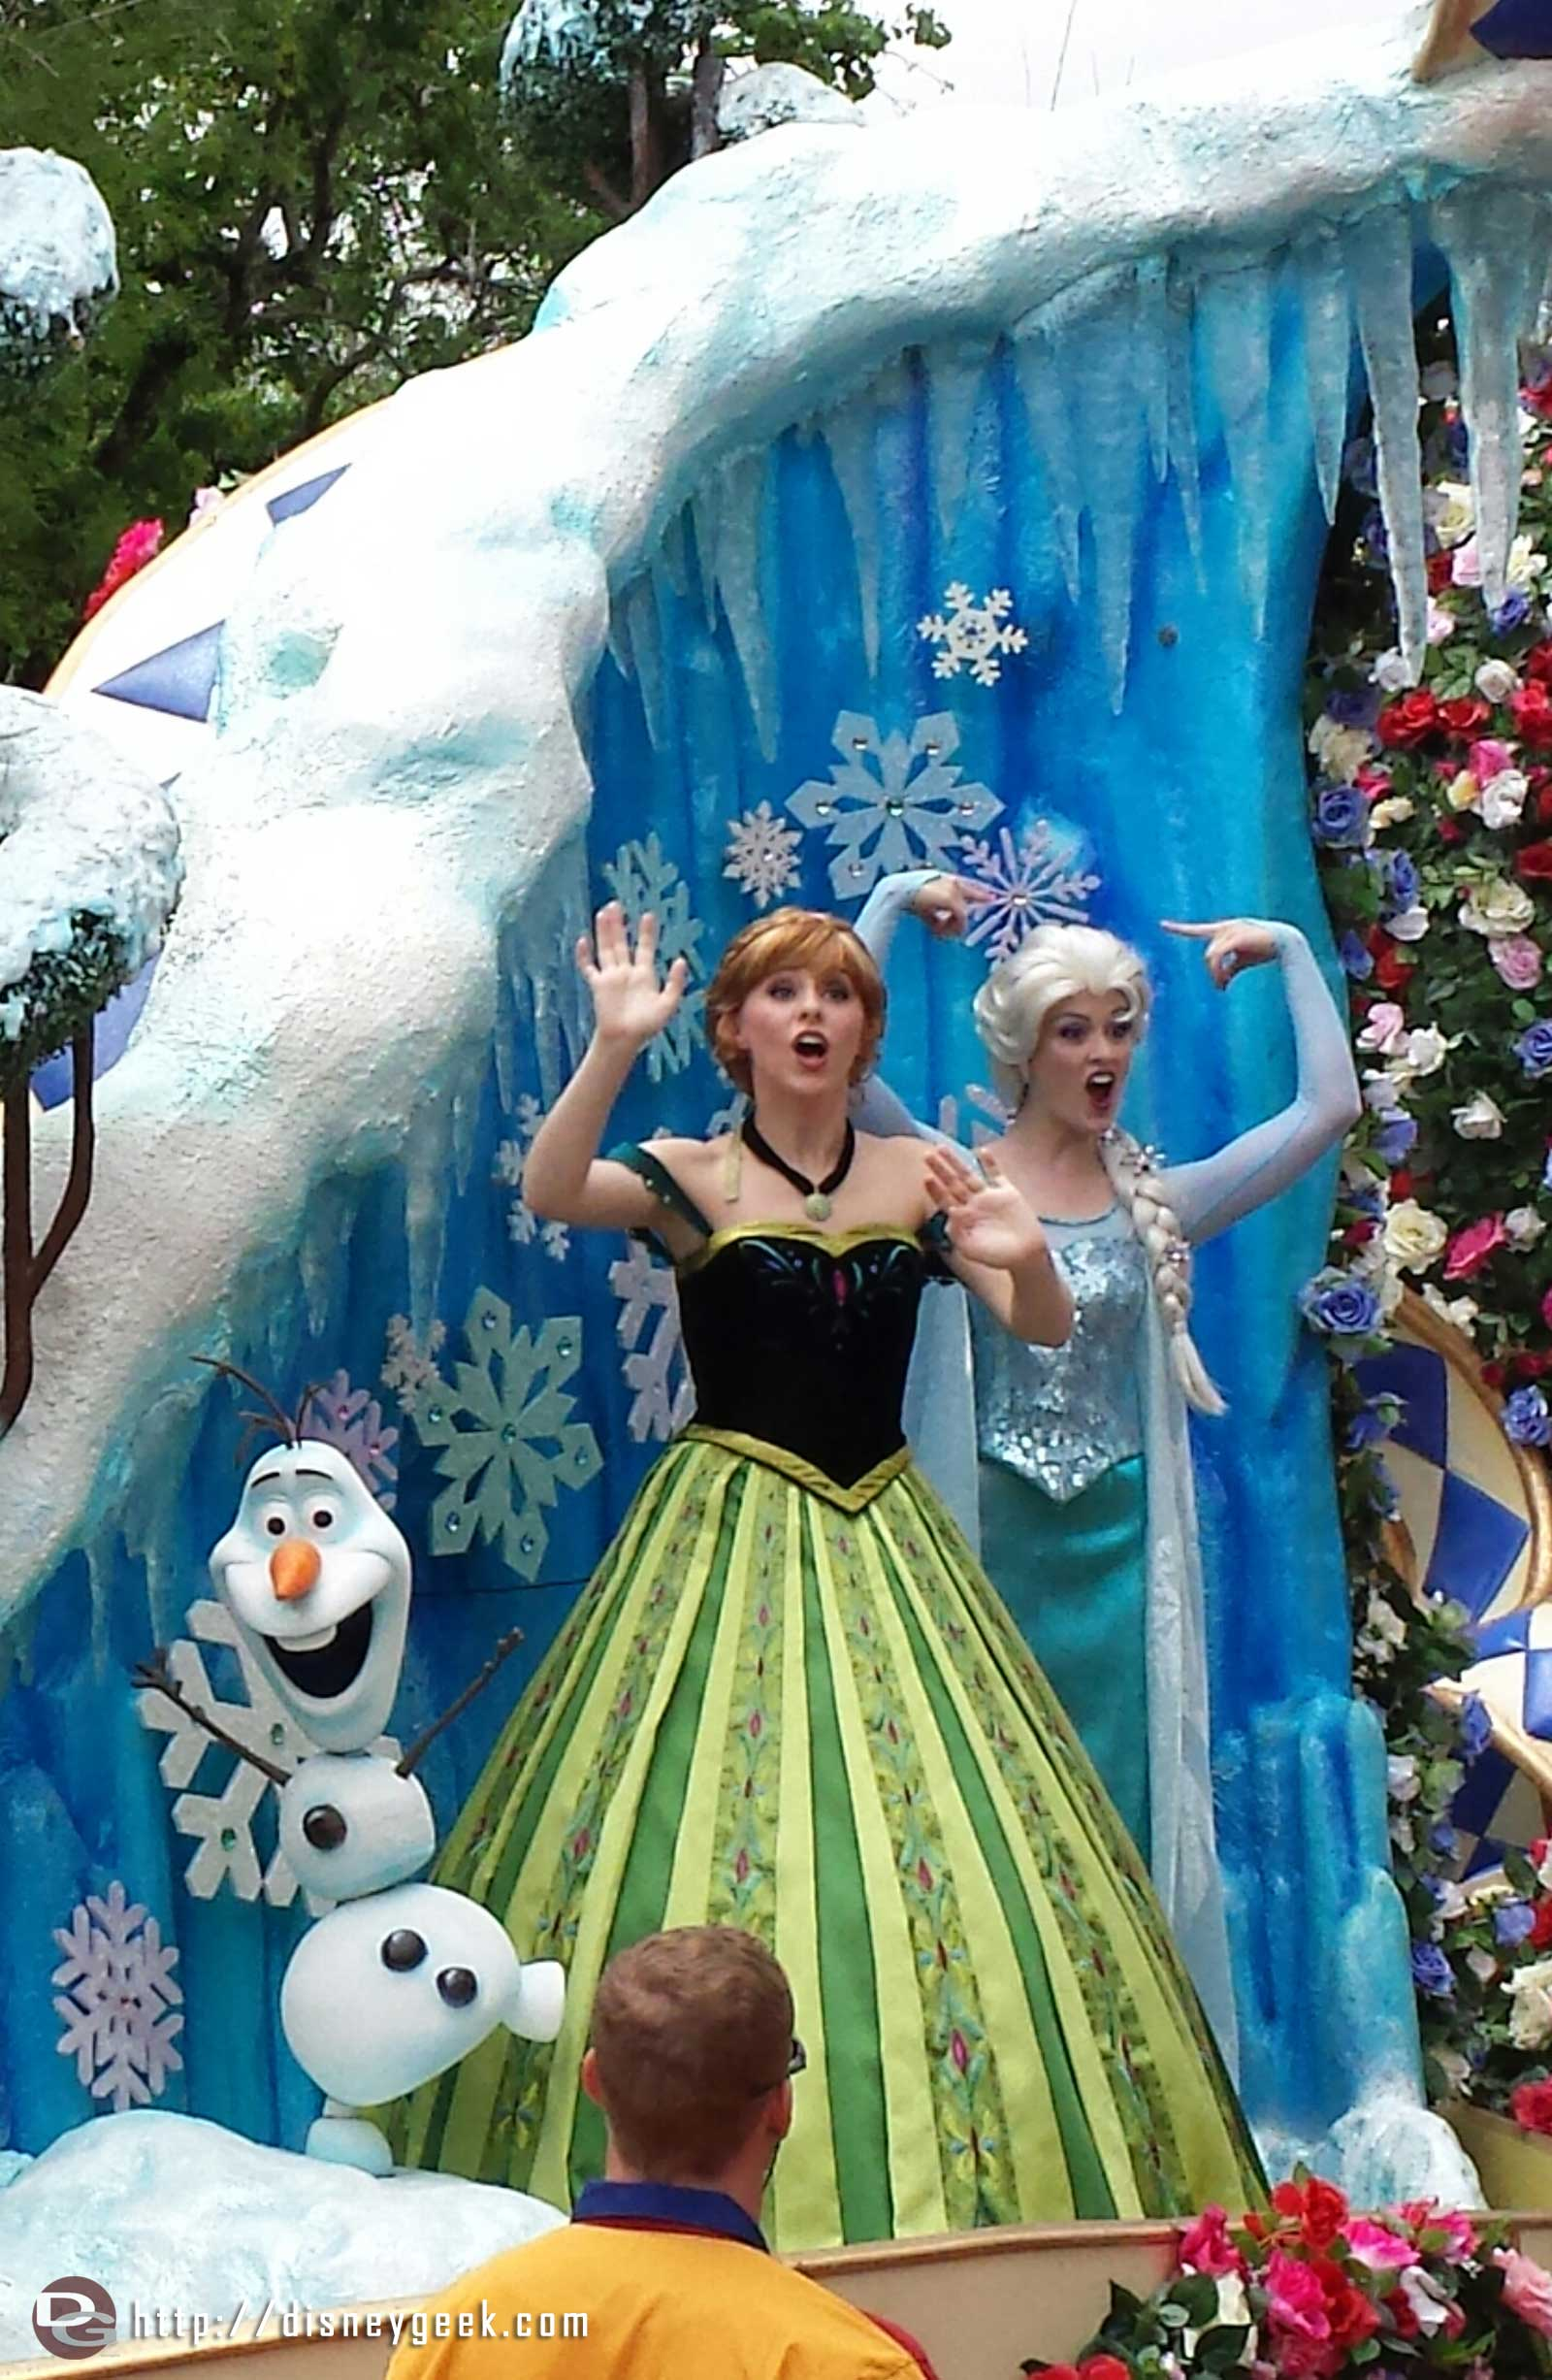 Anna, Elsa & Olaf in the Festival of Fantasy parade at the Magic Kingdom #WDW